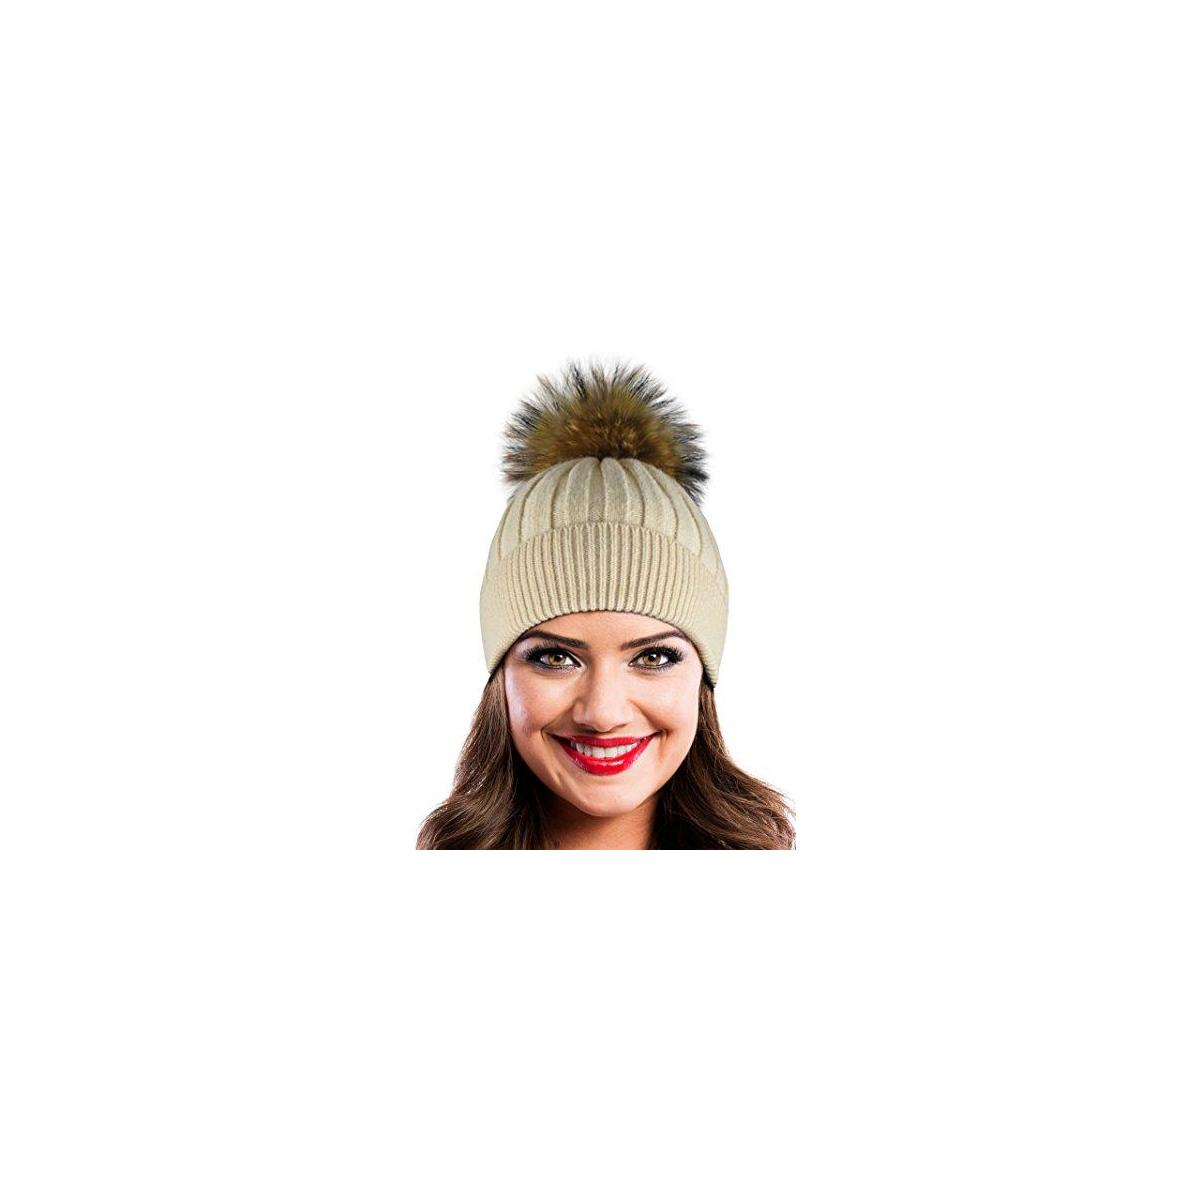 Winter Hat Beanie with Real Fur Pom Pom Decorations. (Black and Beige available)